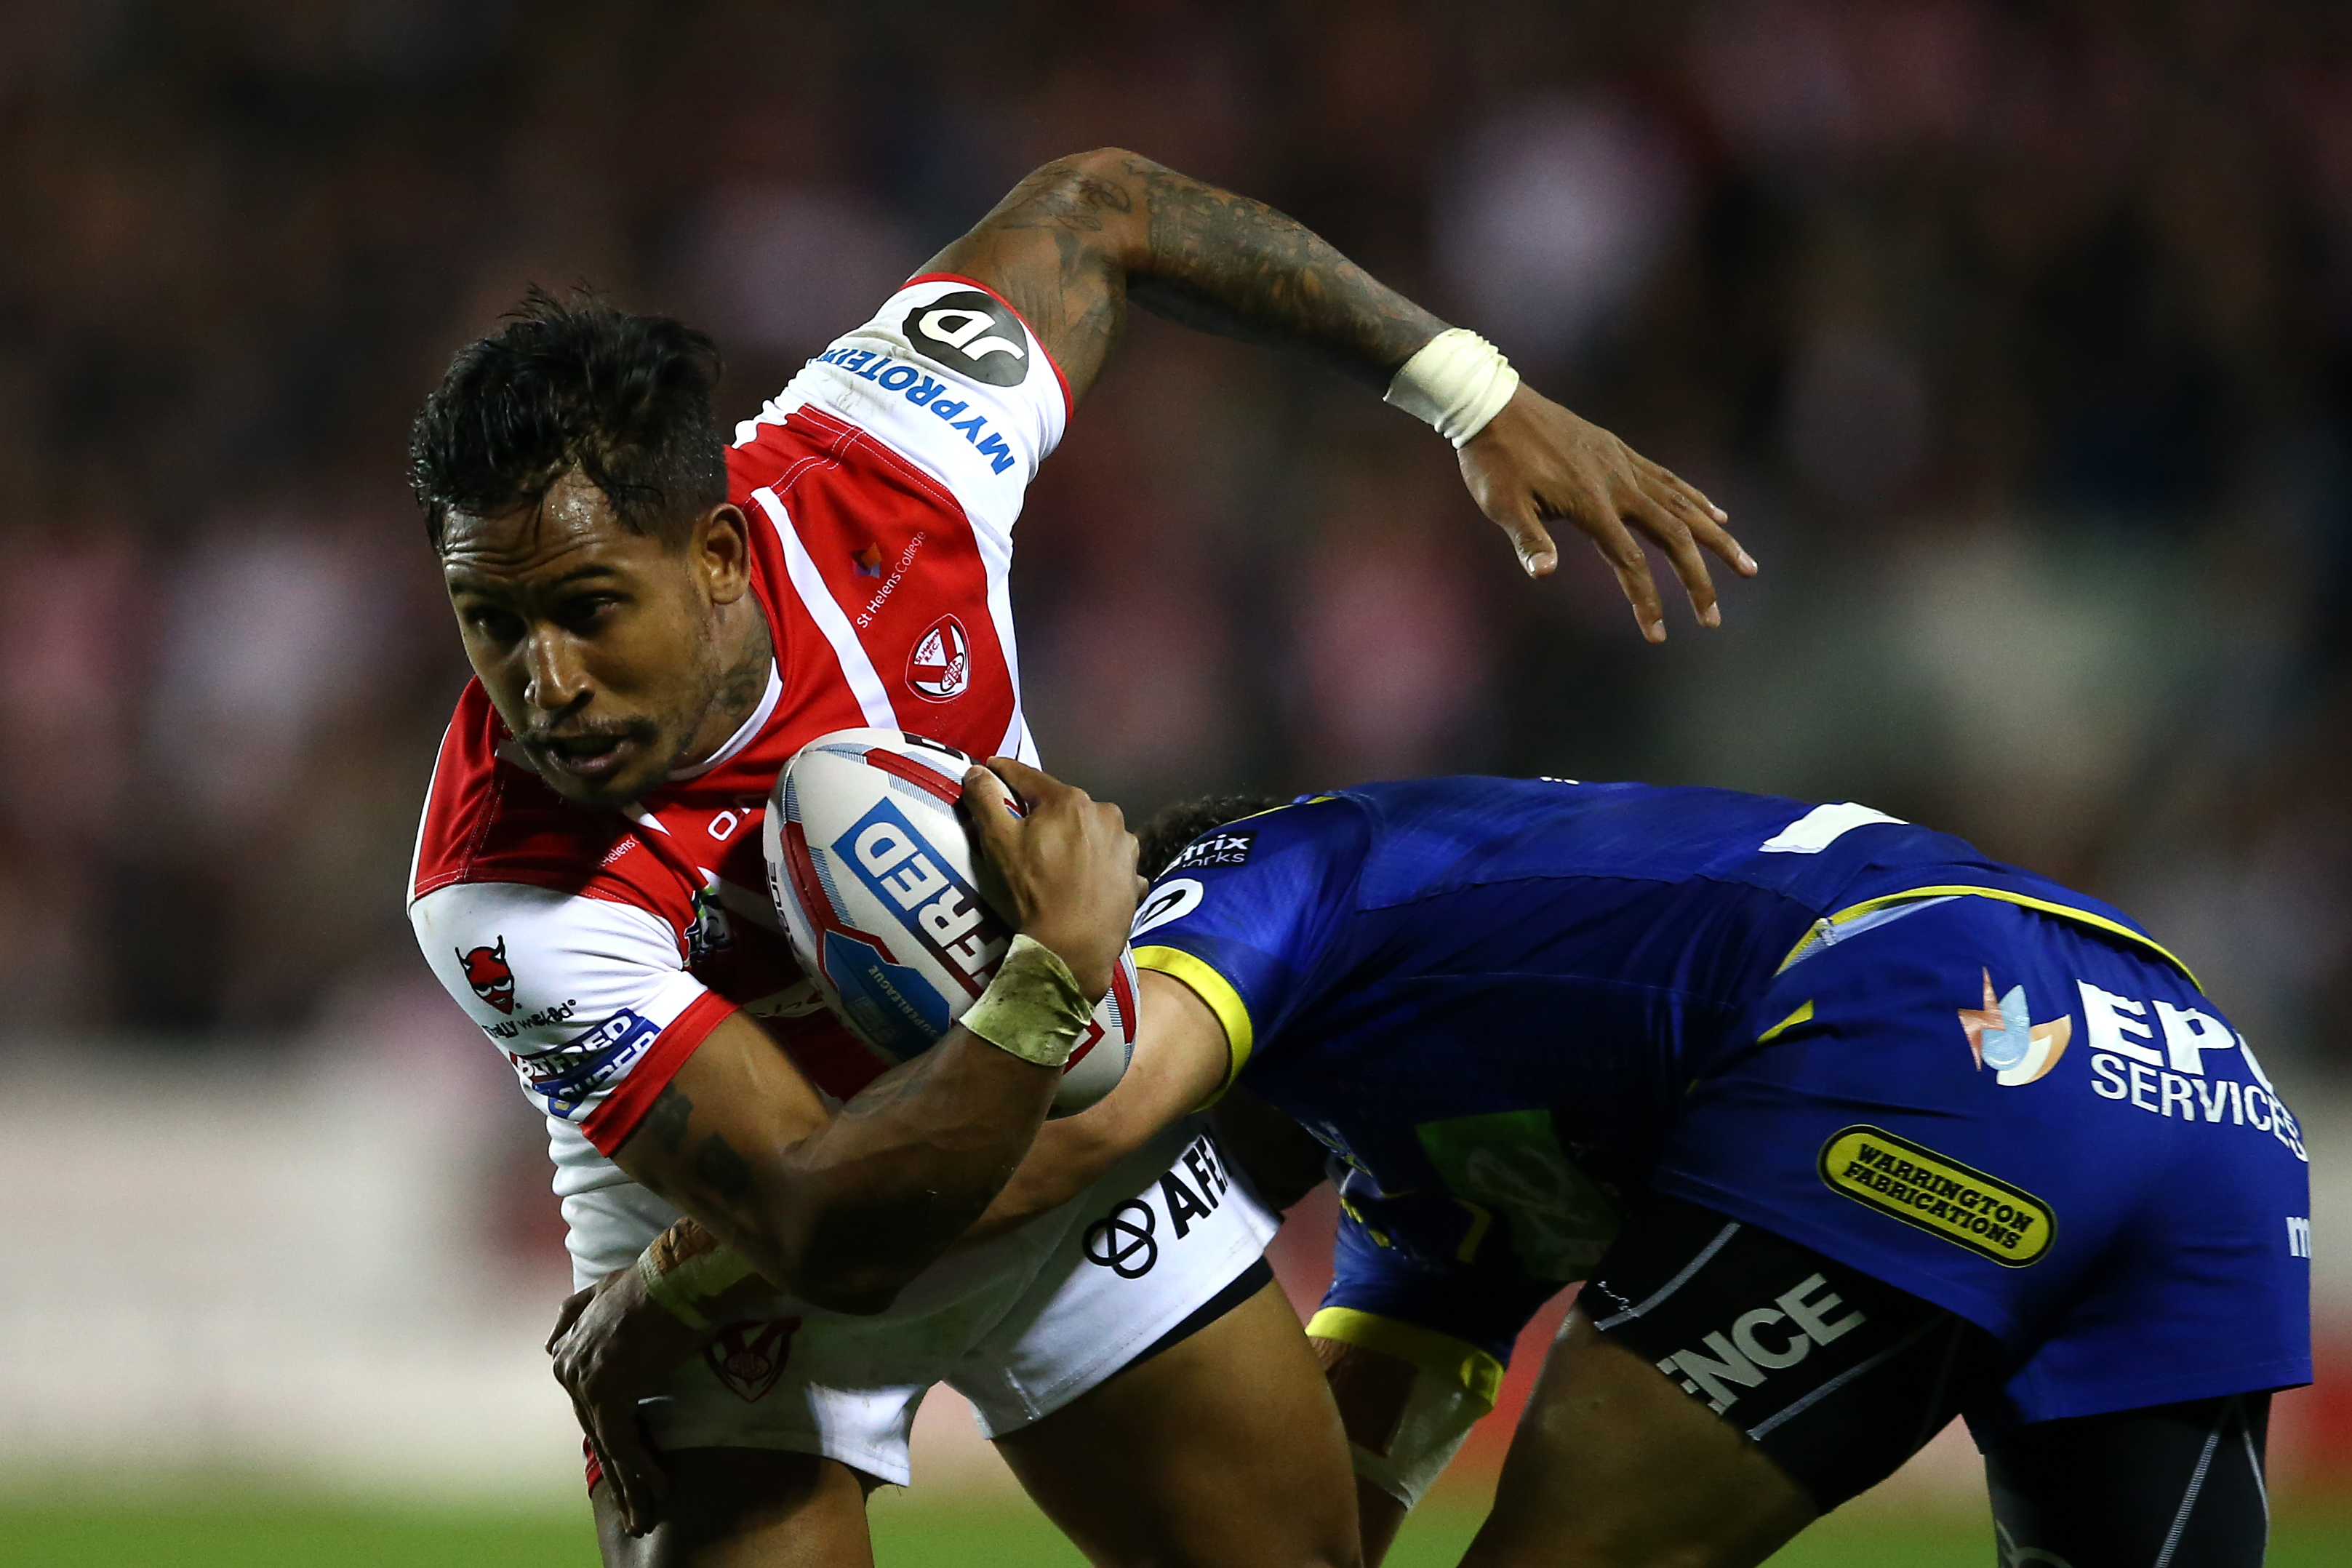 Ben Barba sacked by North Queensland Cowboys for 'significant breach of contract'